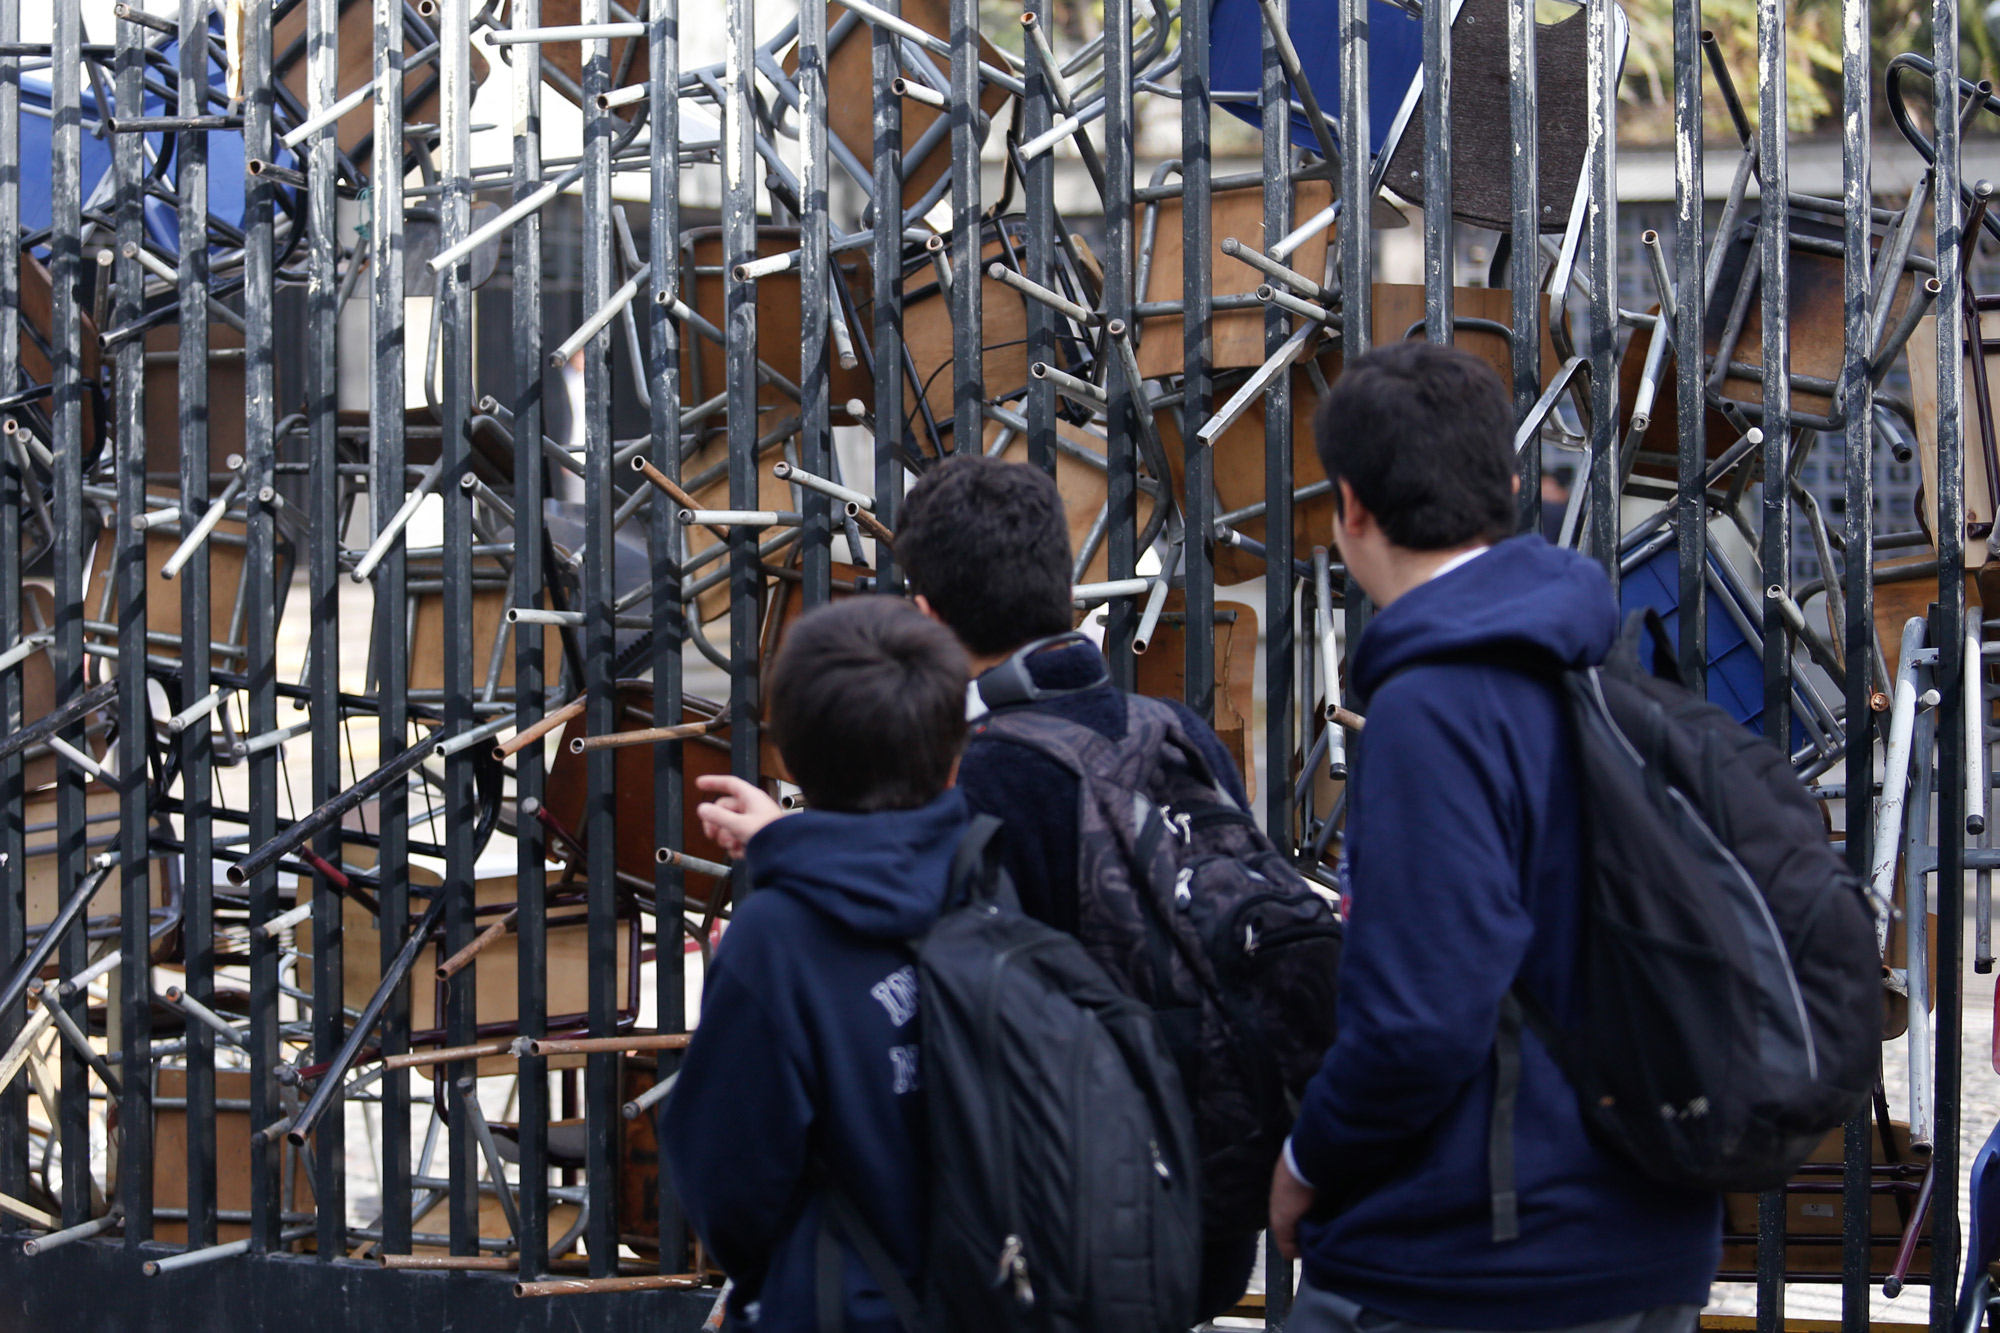 Students outside a blockaded school in Chile.